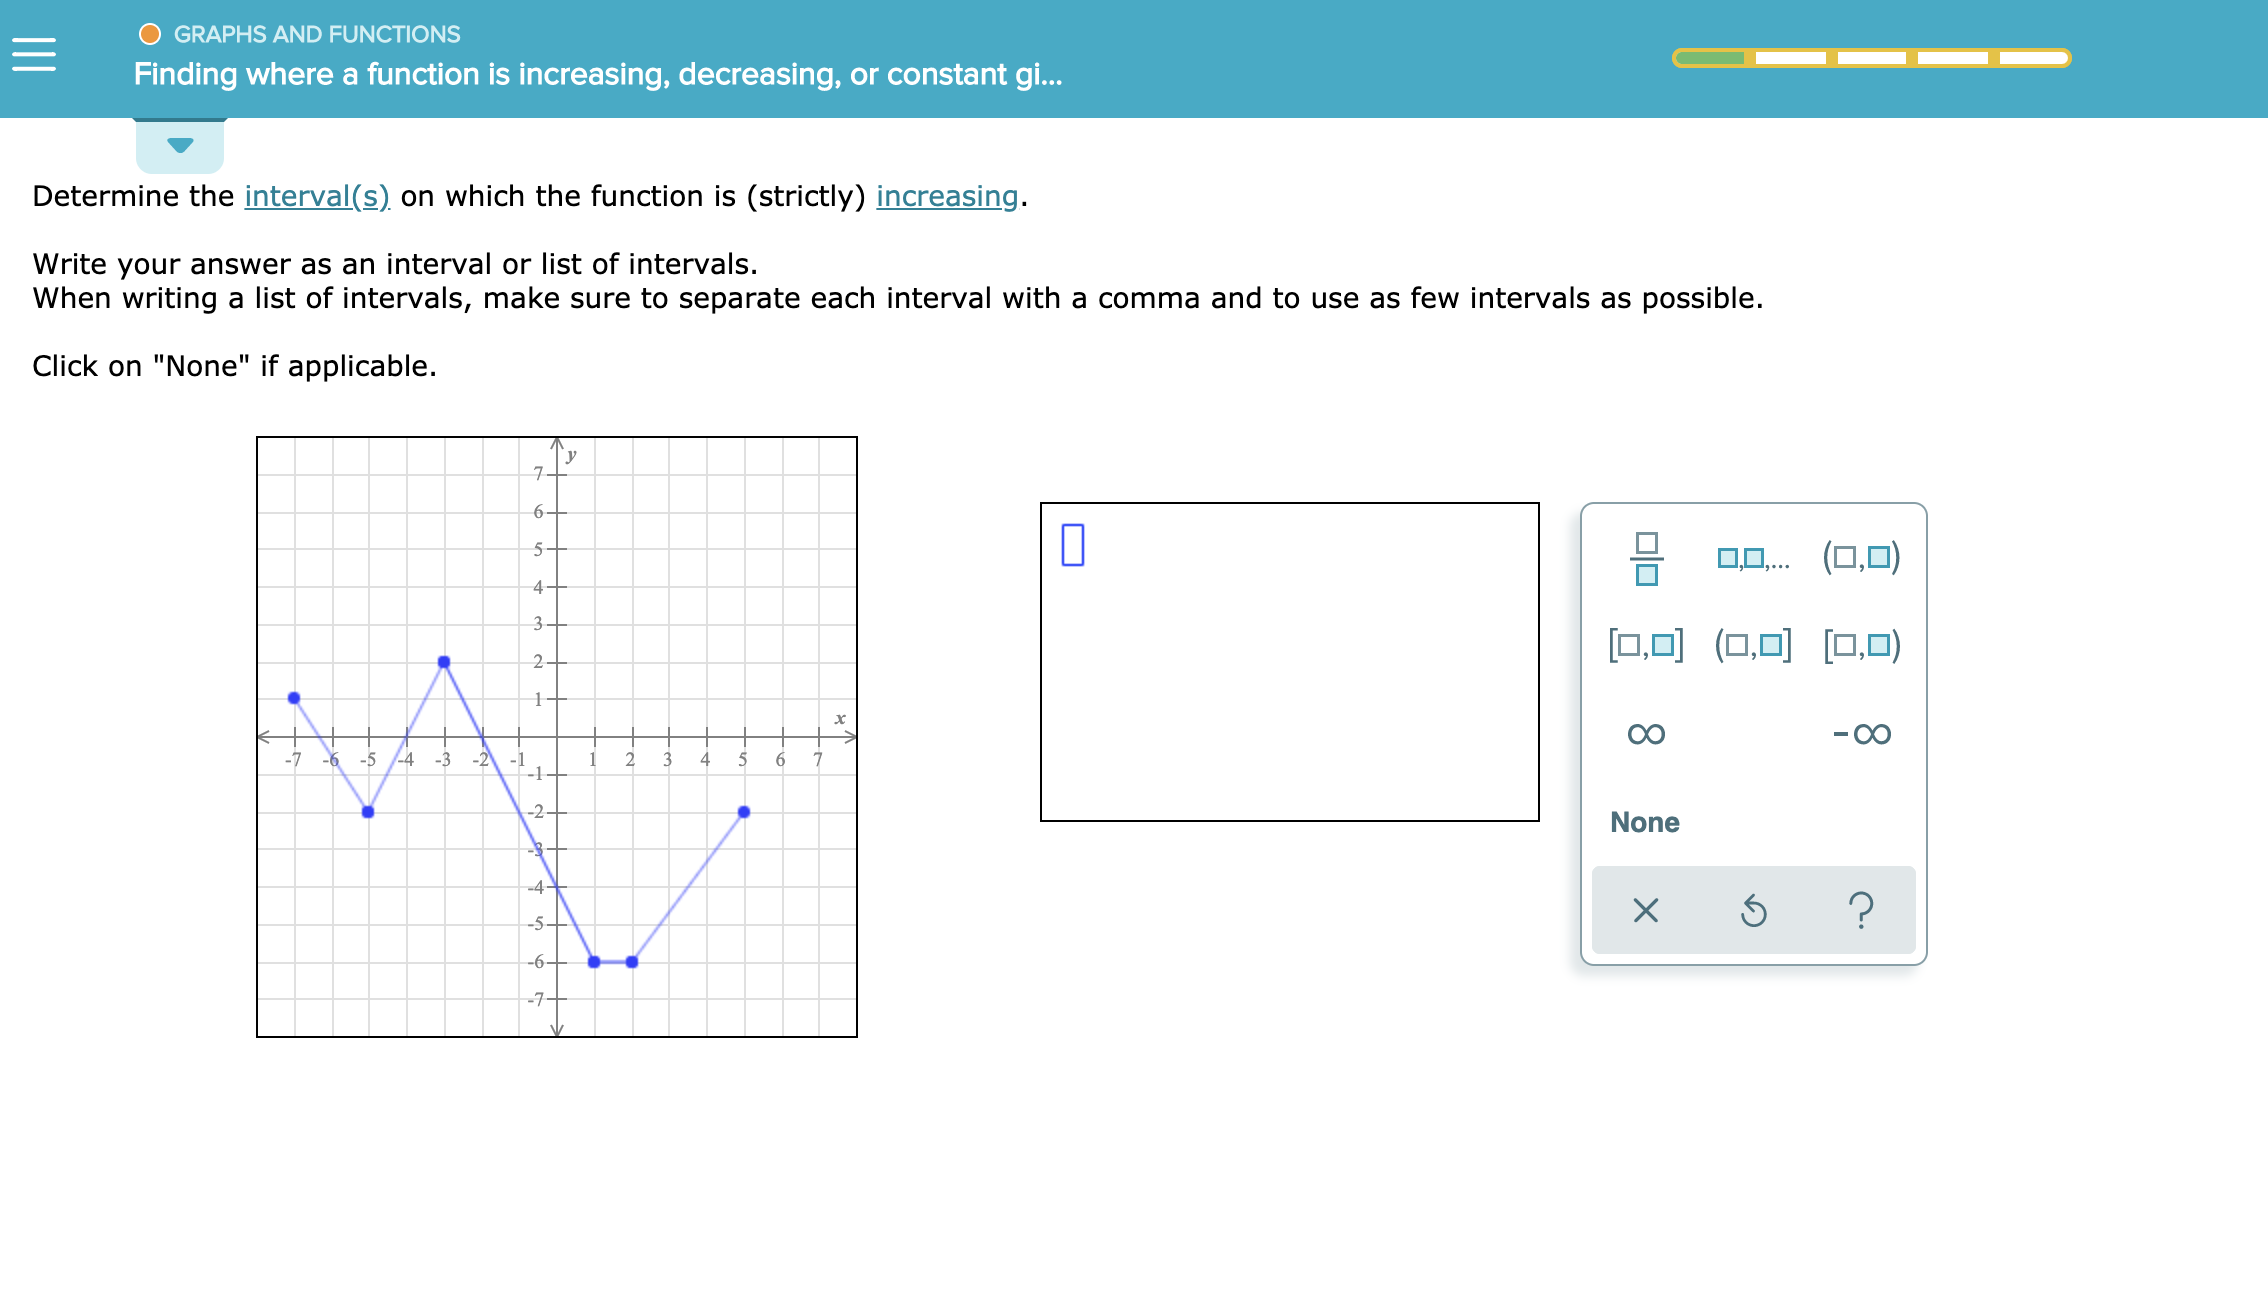 """GRAPHS AND FUNCTIONS Finding where a function is increasing, decreasing, or constant gi.. Determine the interval(s) on which the function is (strictly) increasing. Write your answer as an interval or list of intervals. When writing a list of intervals, make sure to separate each interval with a comma and to use as few intervals as possible Click on """"None"""" if applicable. 7 6- -5 OD(,O 4- 3 0O(OO 0) 2 1+ -7 -5-4 6 -3 -2 -1 1 1 2 3 4 6 -2 None -4- -5- ? X -6- -7-"""